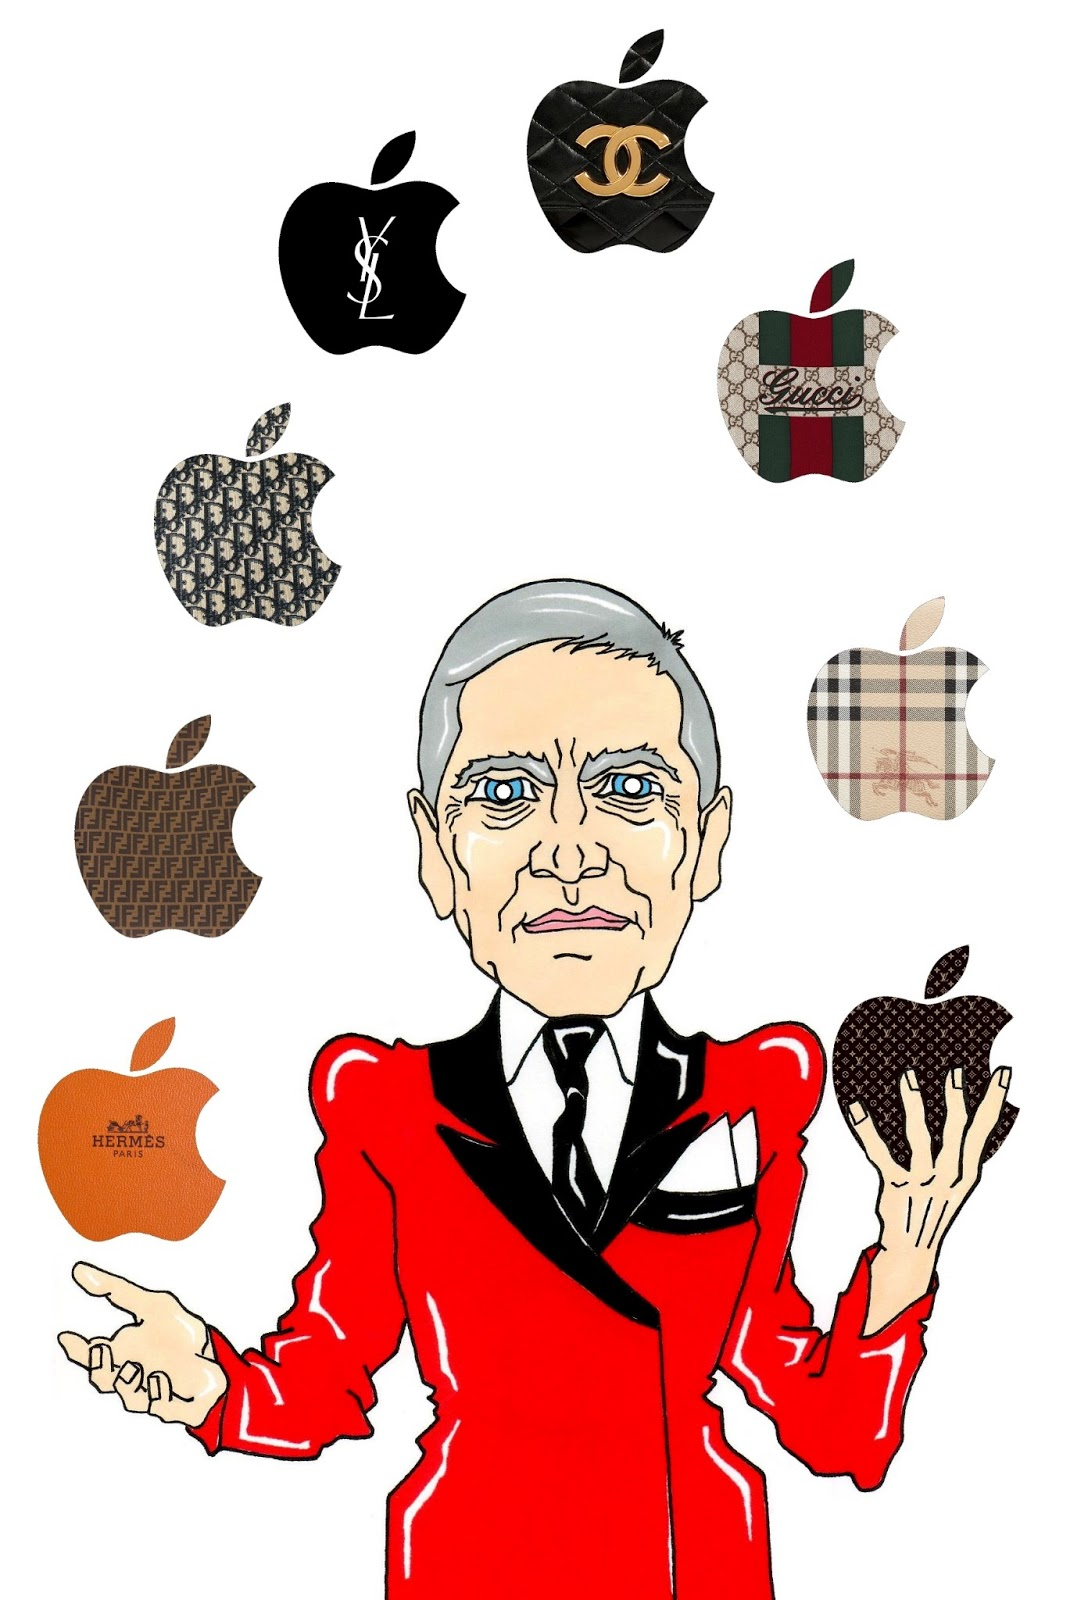 Humor Chic: Humor Chic Luxury & Technology - Apple Ceo Tim Cook and ...